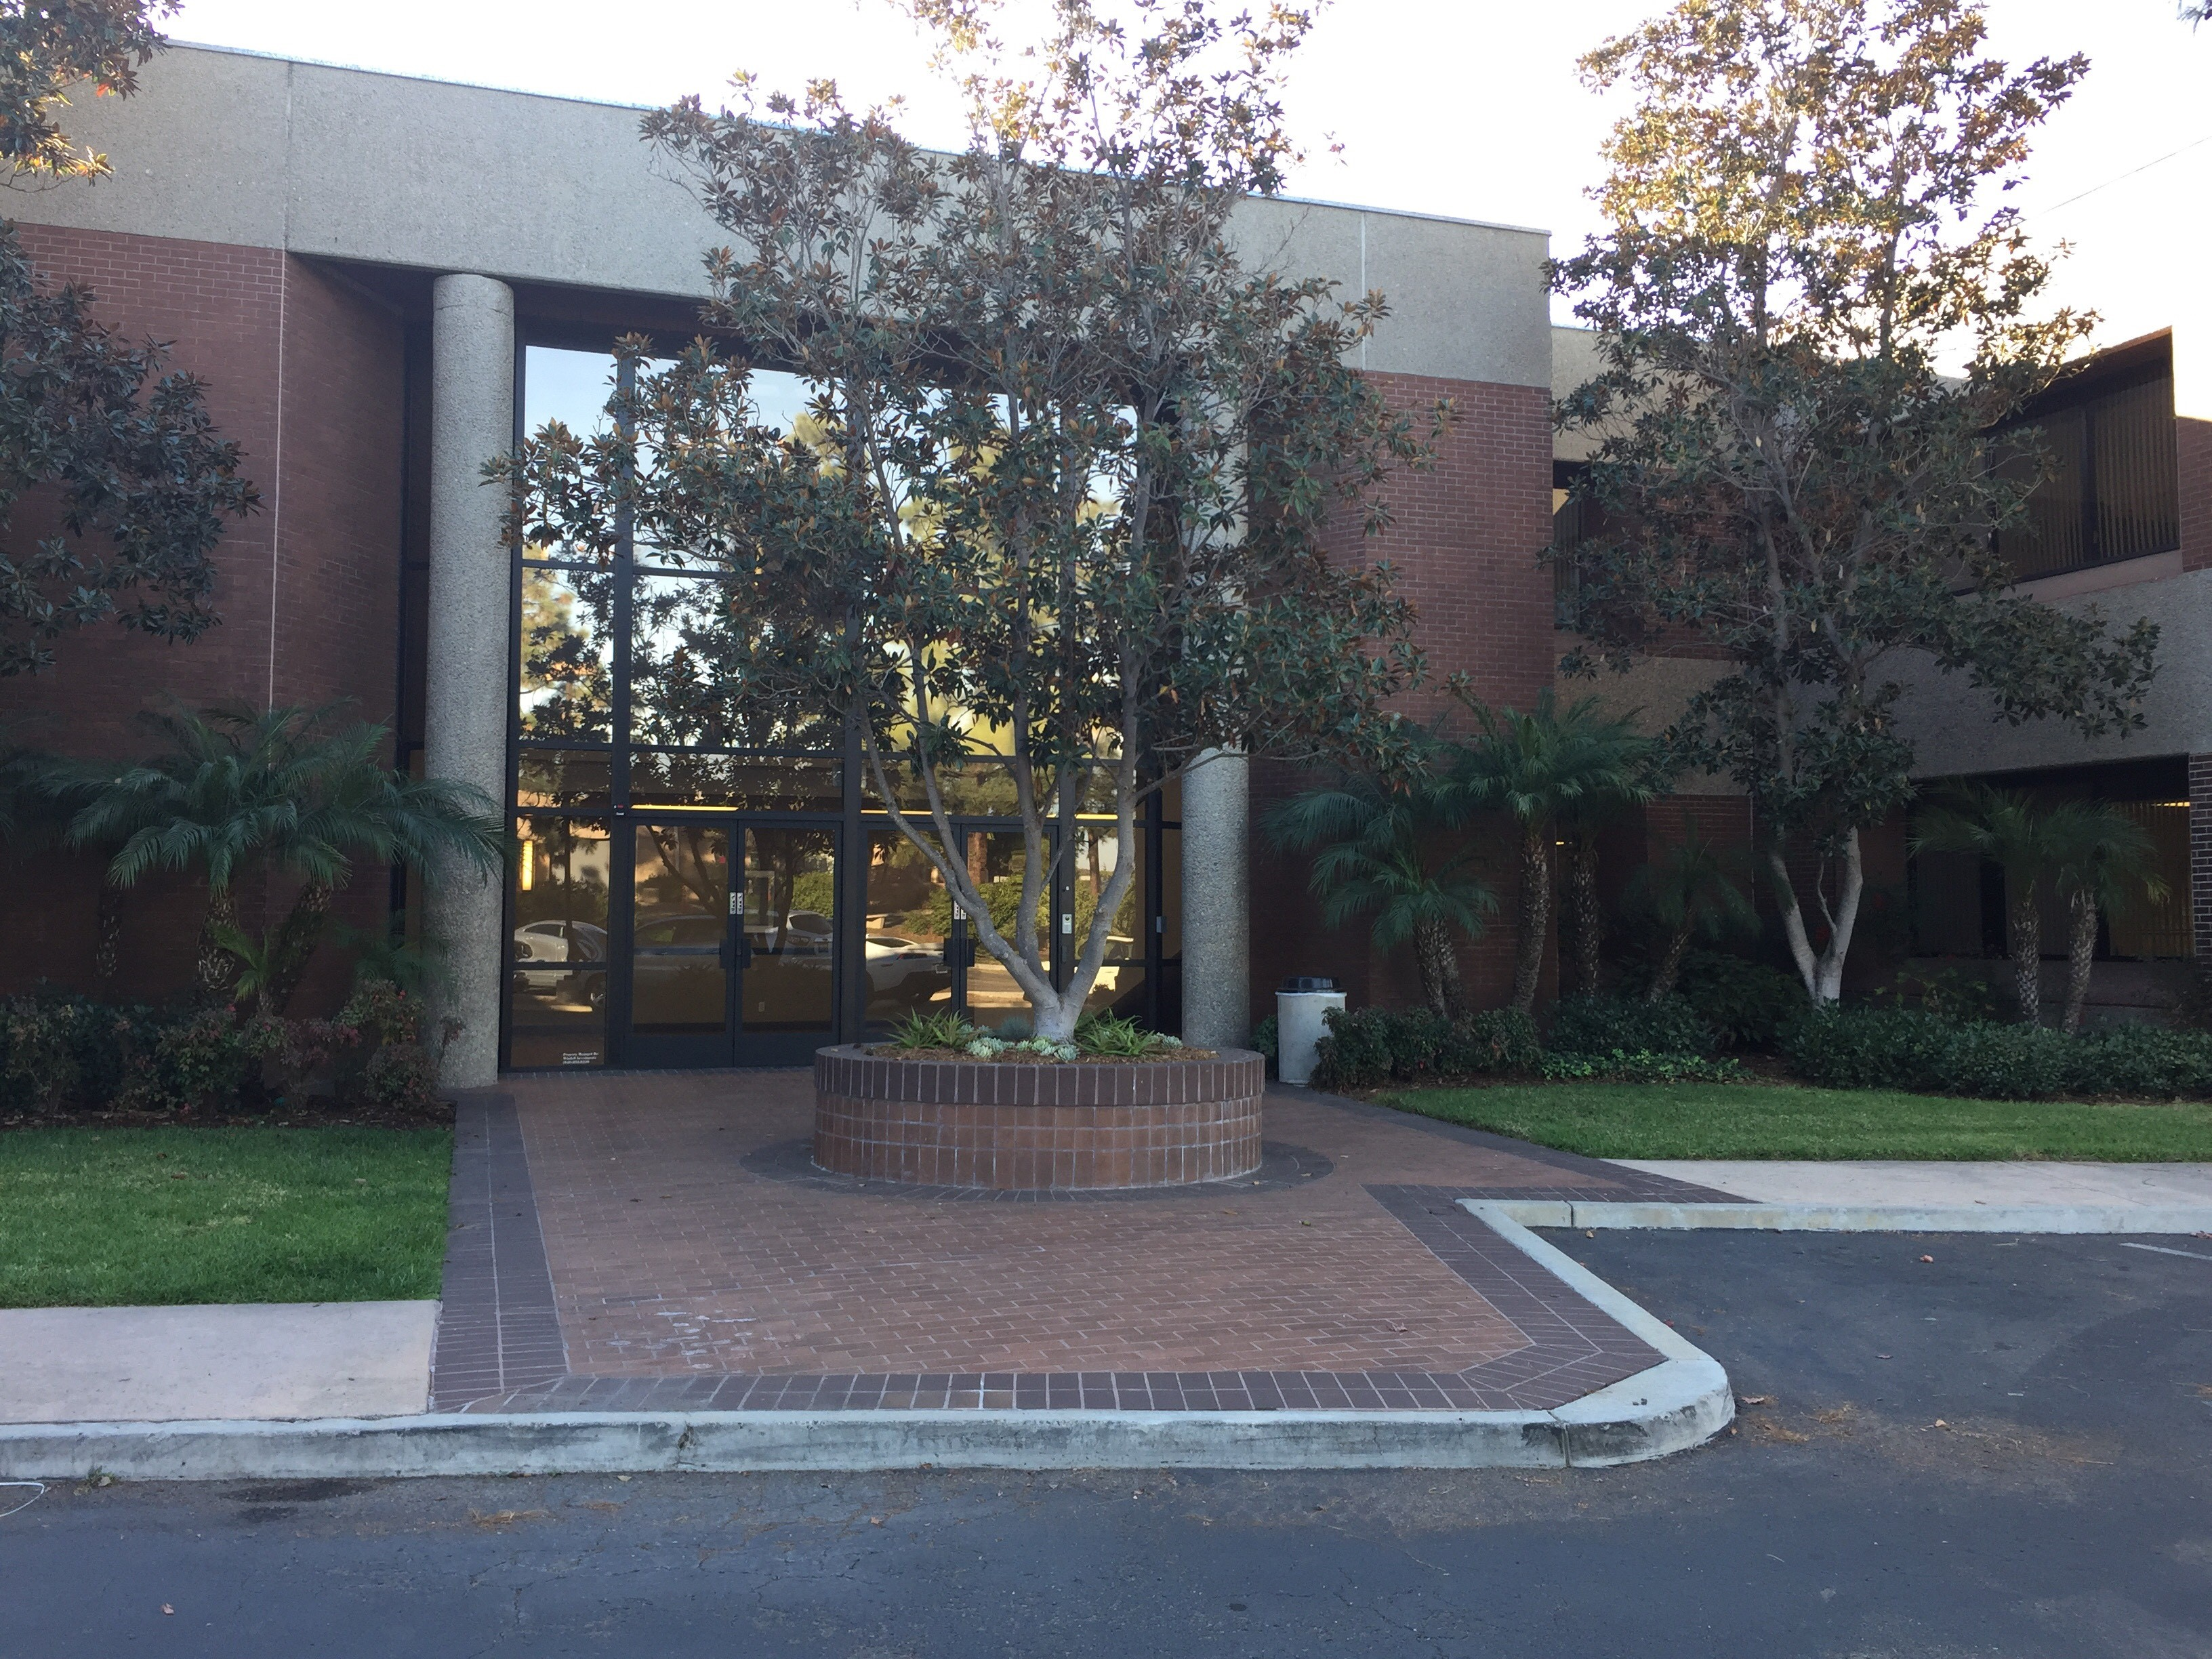 Mira Mesa San Diego sleep center - Advanced Sleep Medicine Services - entrance